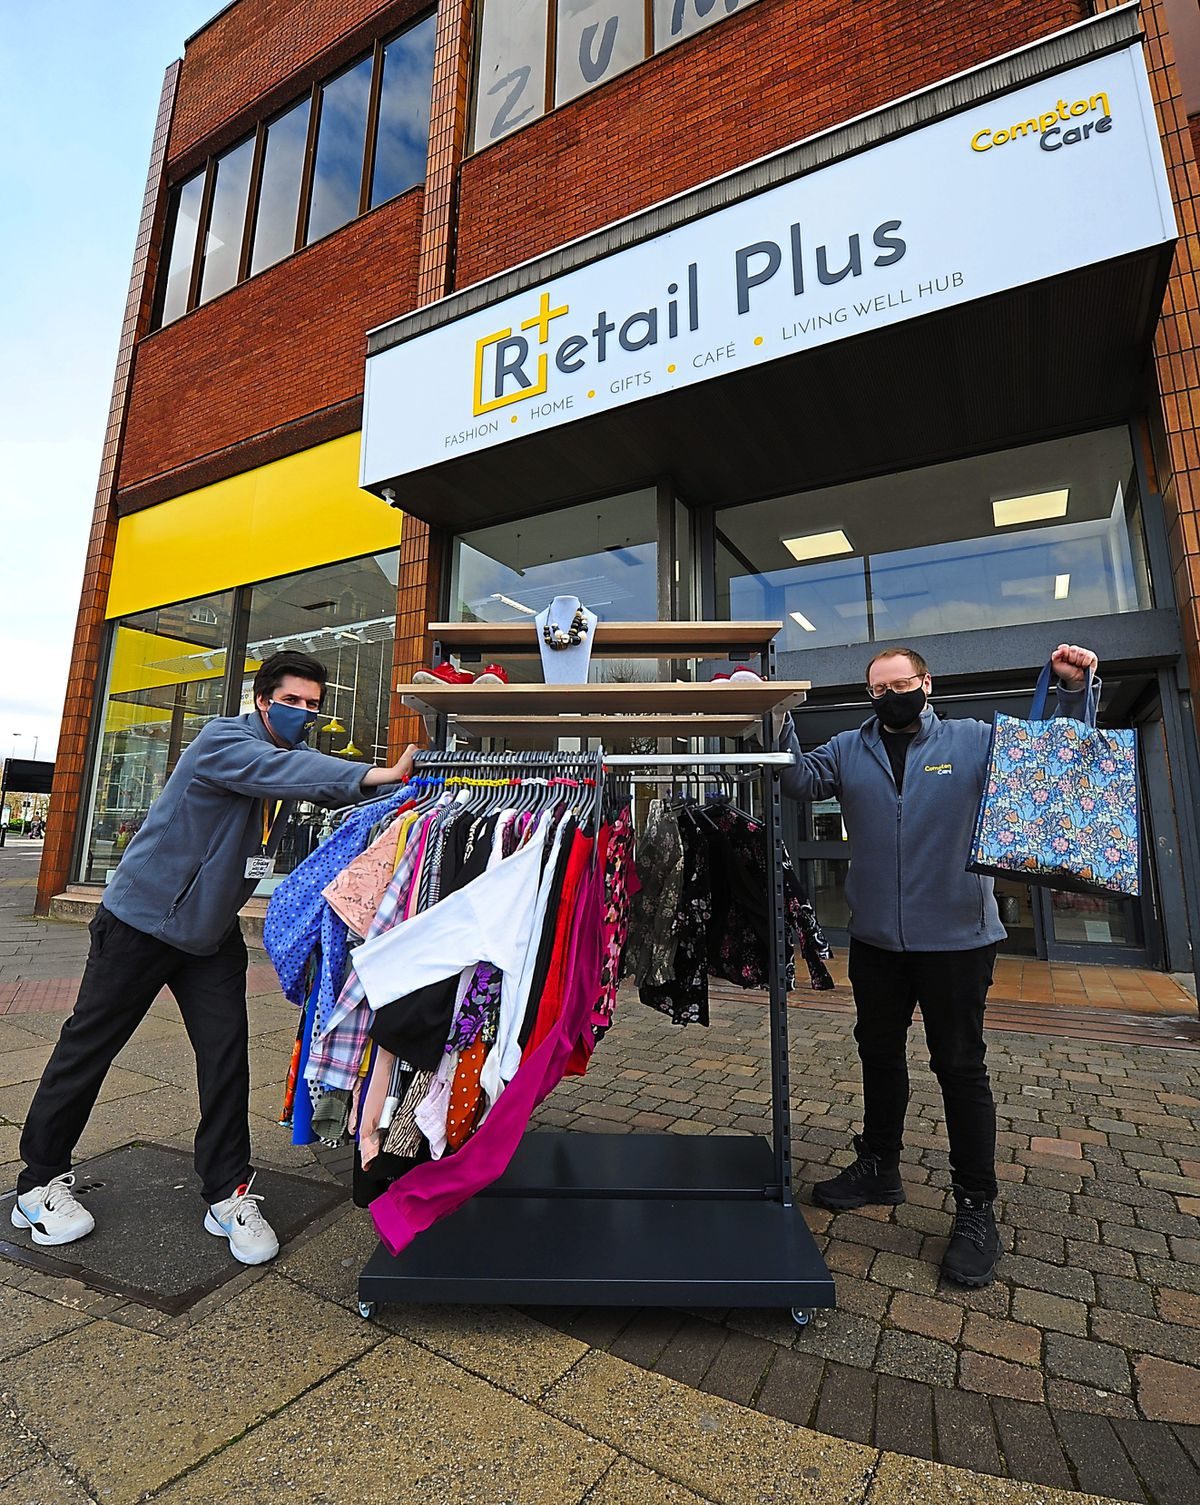 Getting ready to re-open, (left) assistant manager Mike Evans, and (right) area manager Aaron Smith, at Compton Care Retail Plus, Wolverhampton.